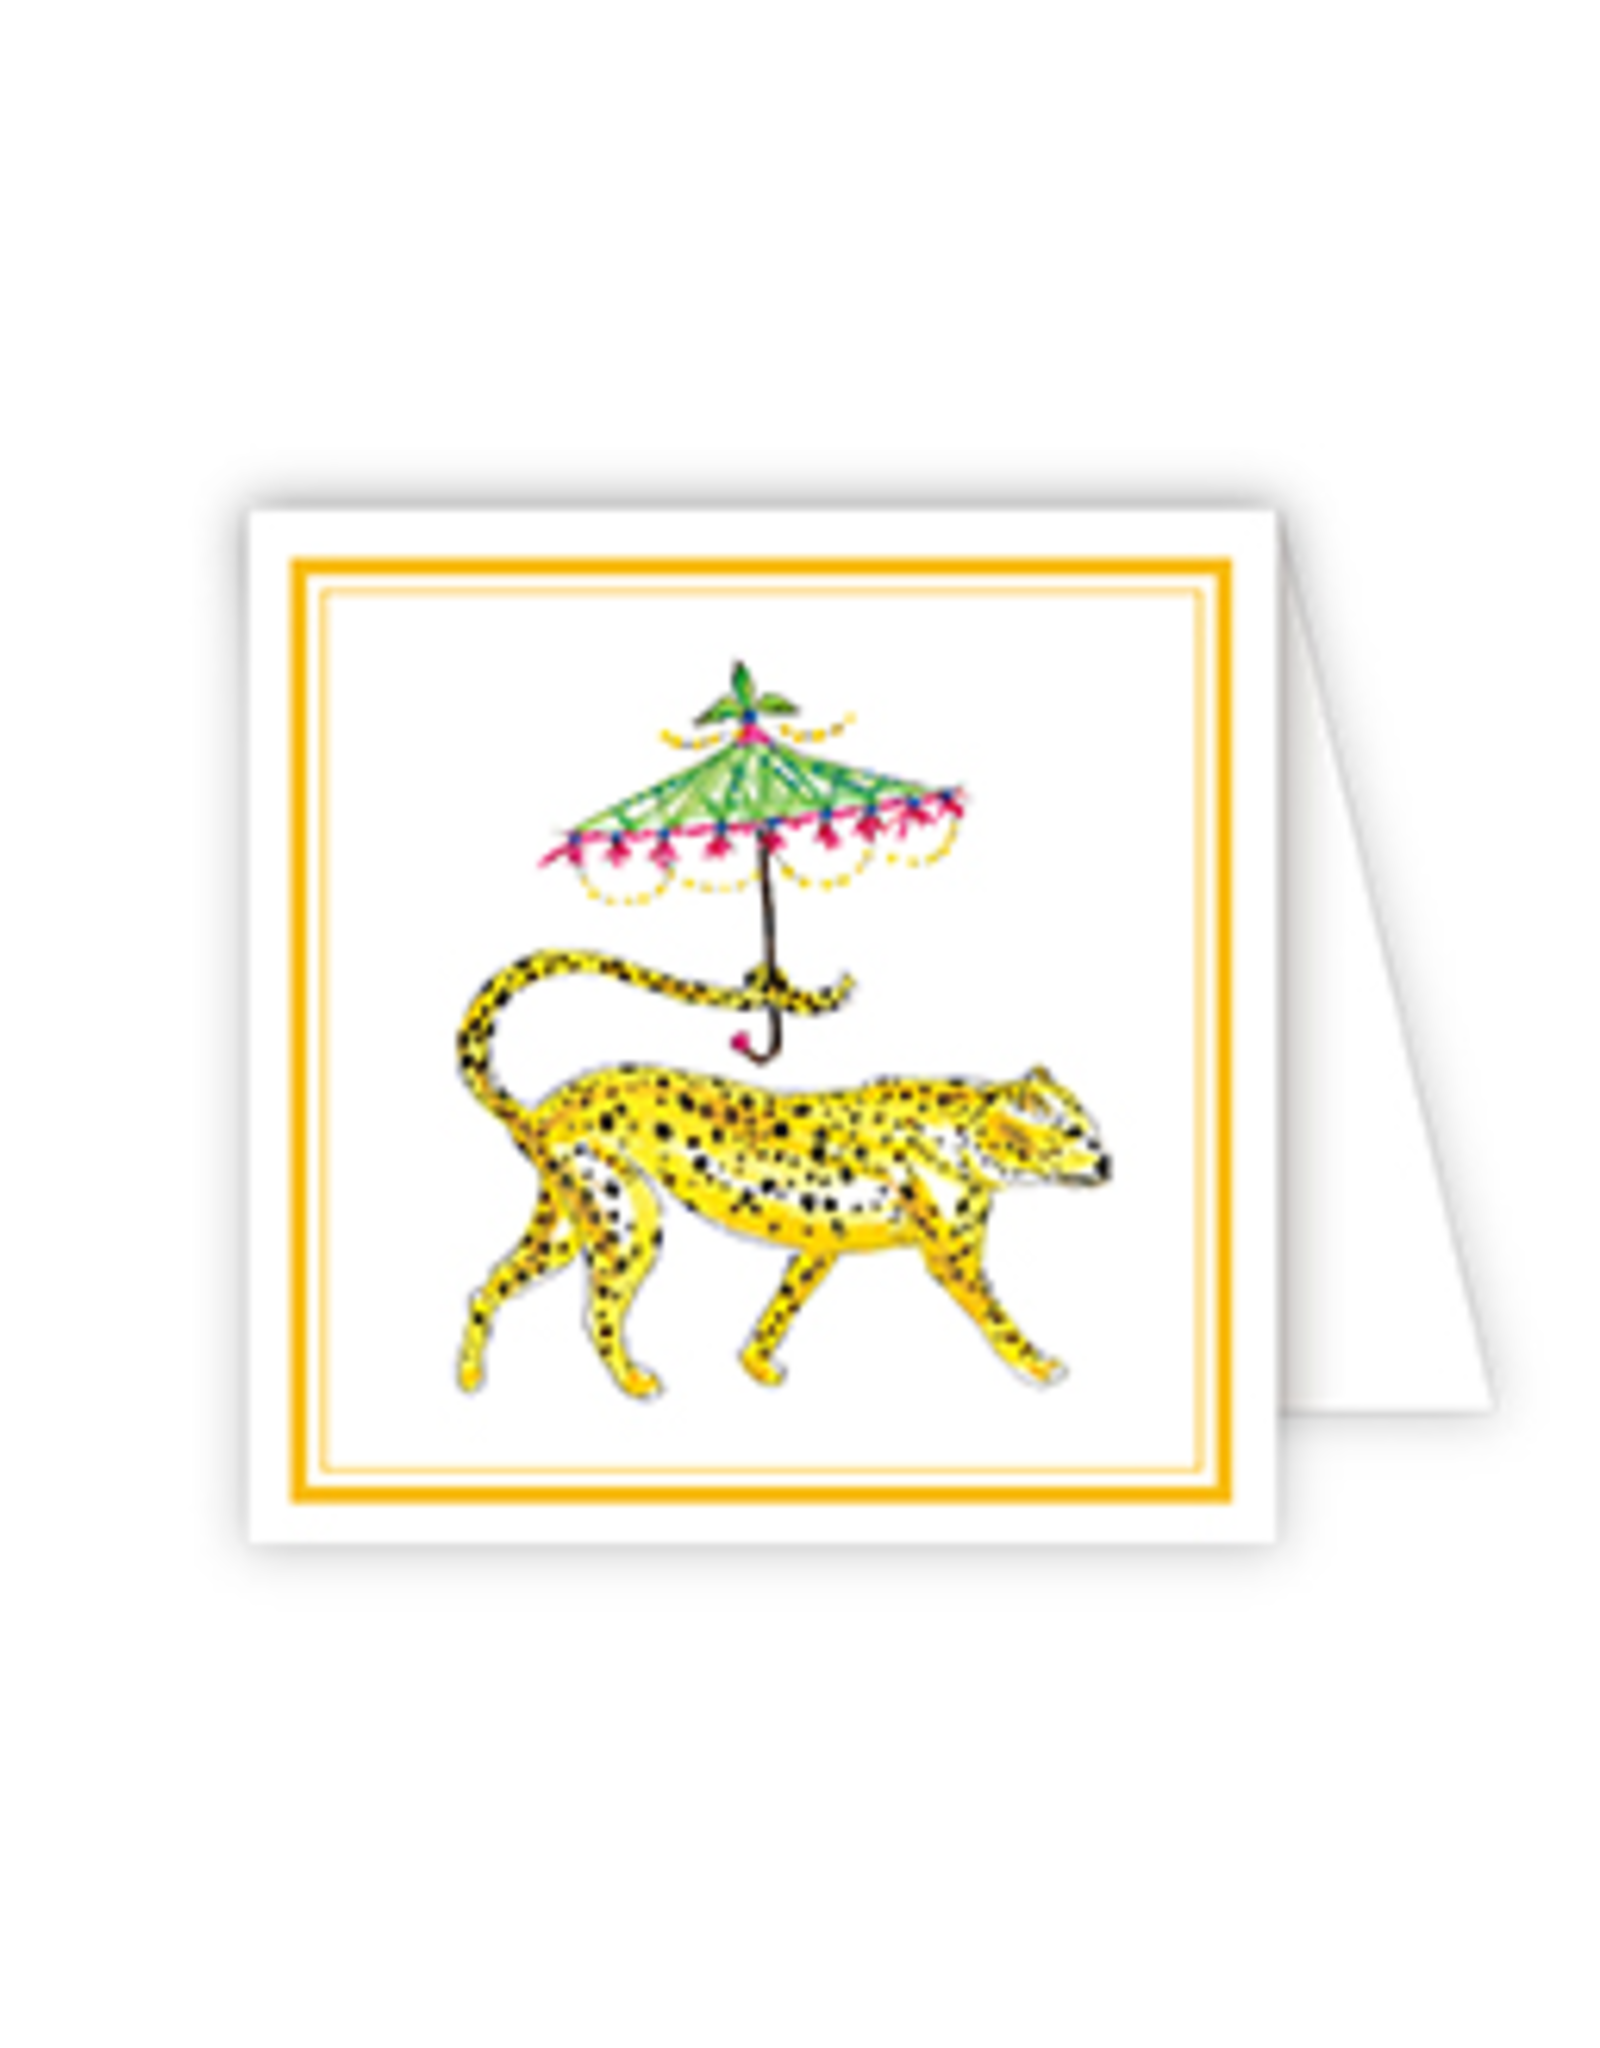 RoseanneBECK Collection Dressed Up Cheetah Enclosure Card